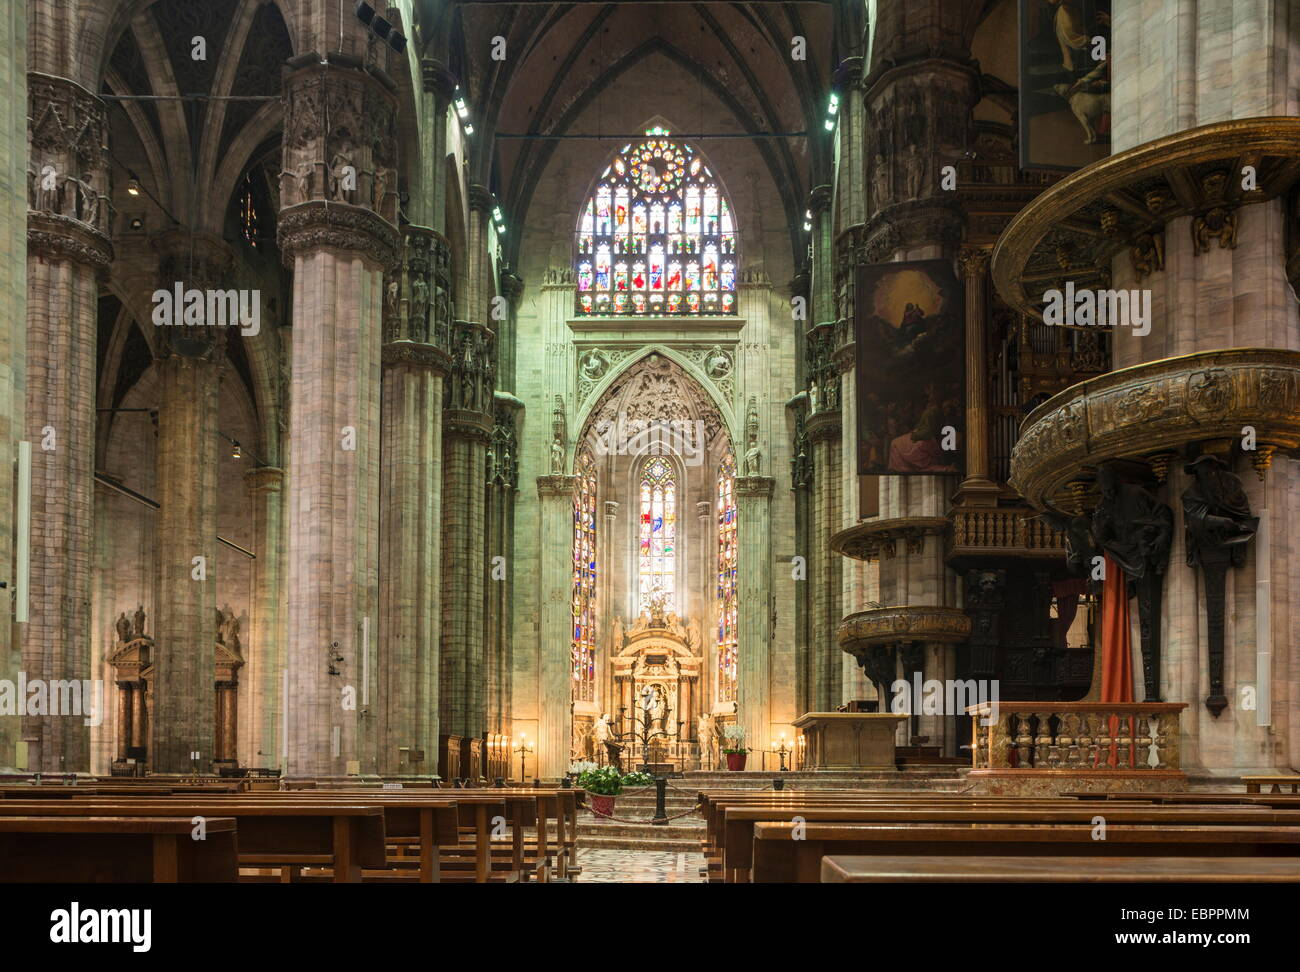 Interior of Milan Cathedral, Piazza Duomo, Milan, Lombardy, Italy, Europe Stock Photo